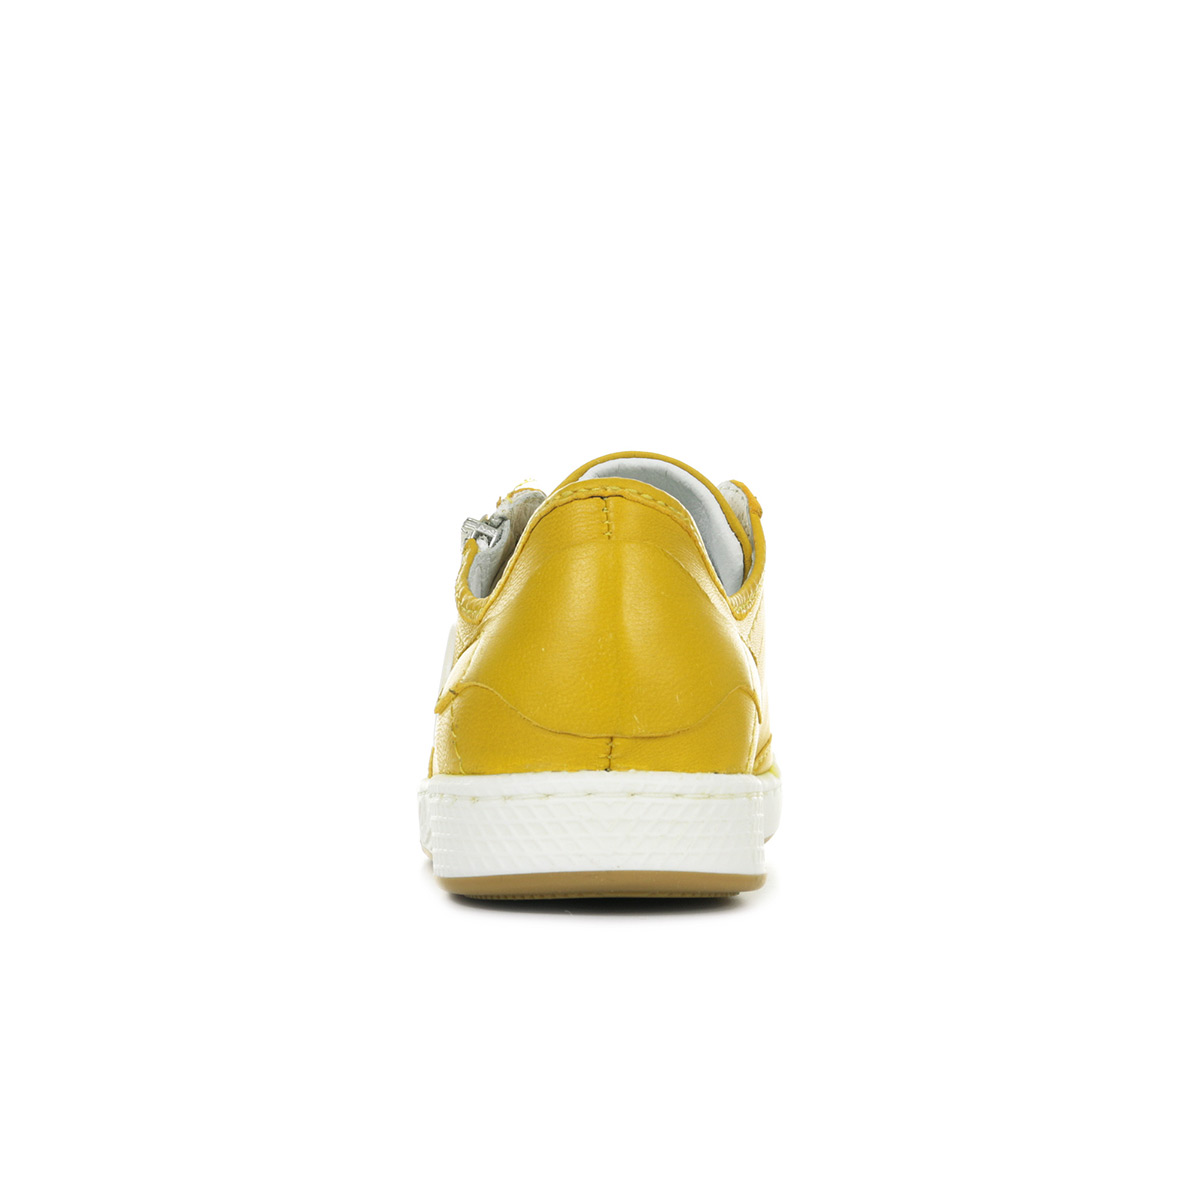 2a775277380 Chaussures Baskets PATAUGAS femme Jester F2E Ocre taille Jaune Cuir ...